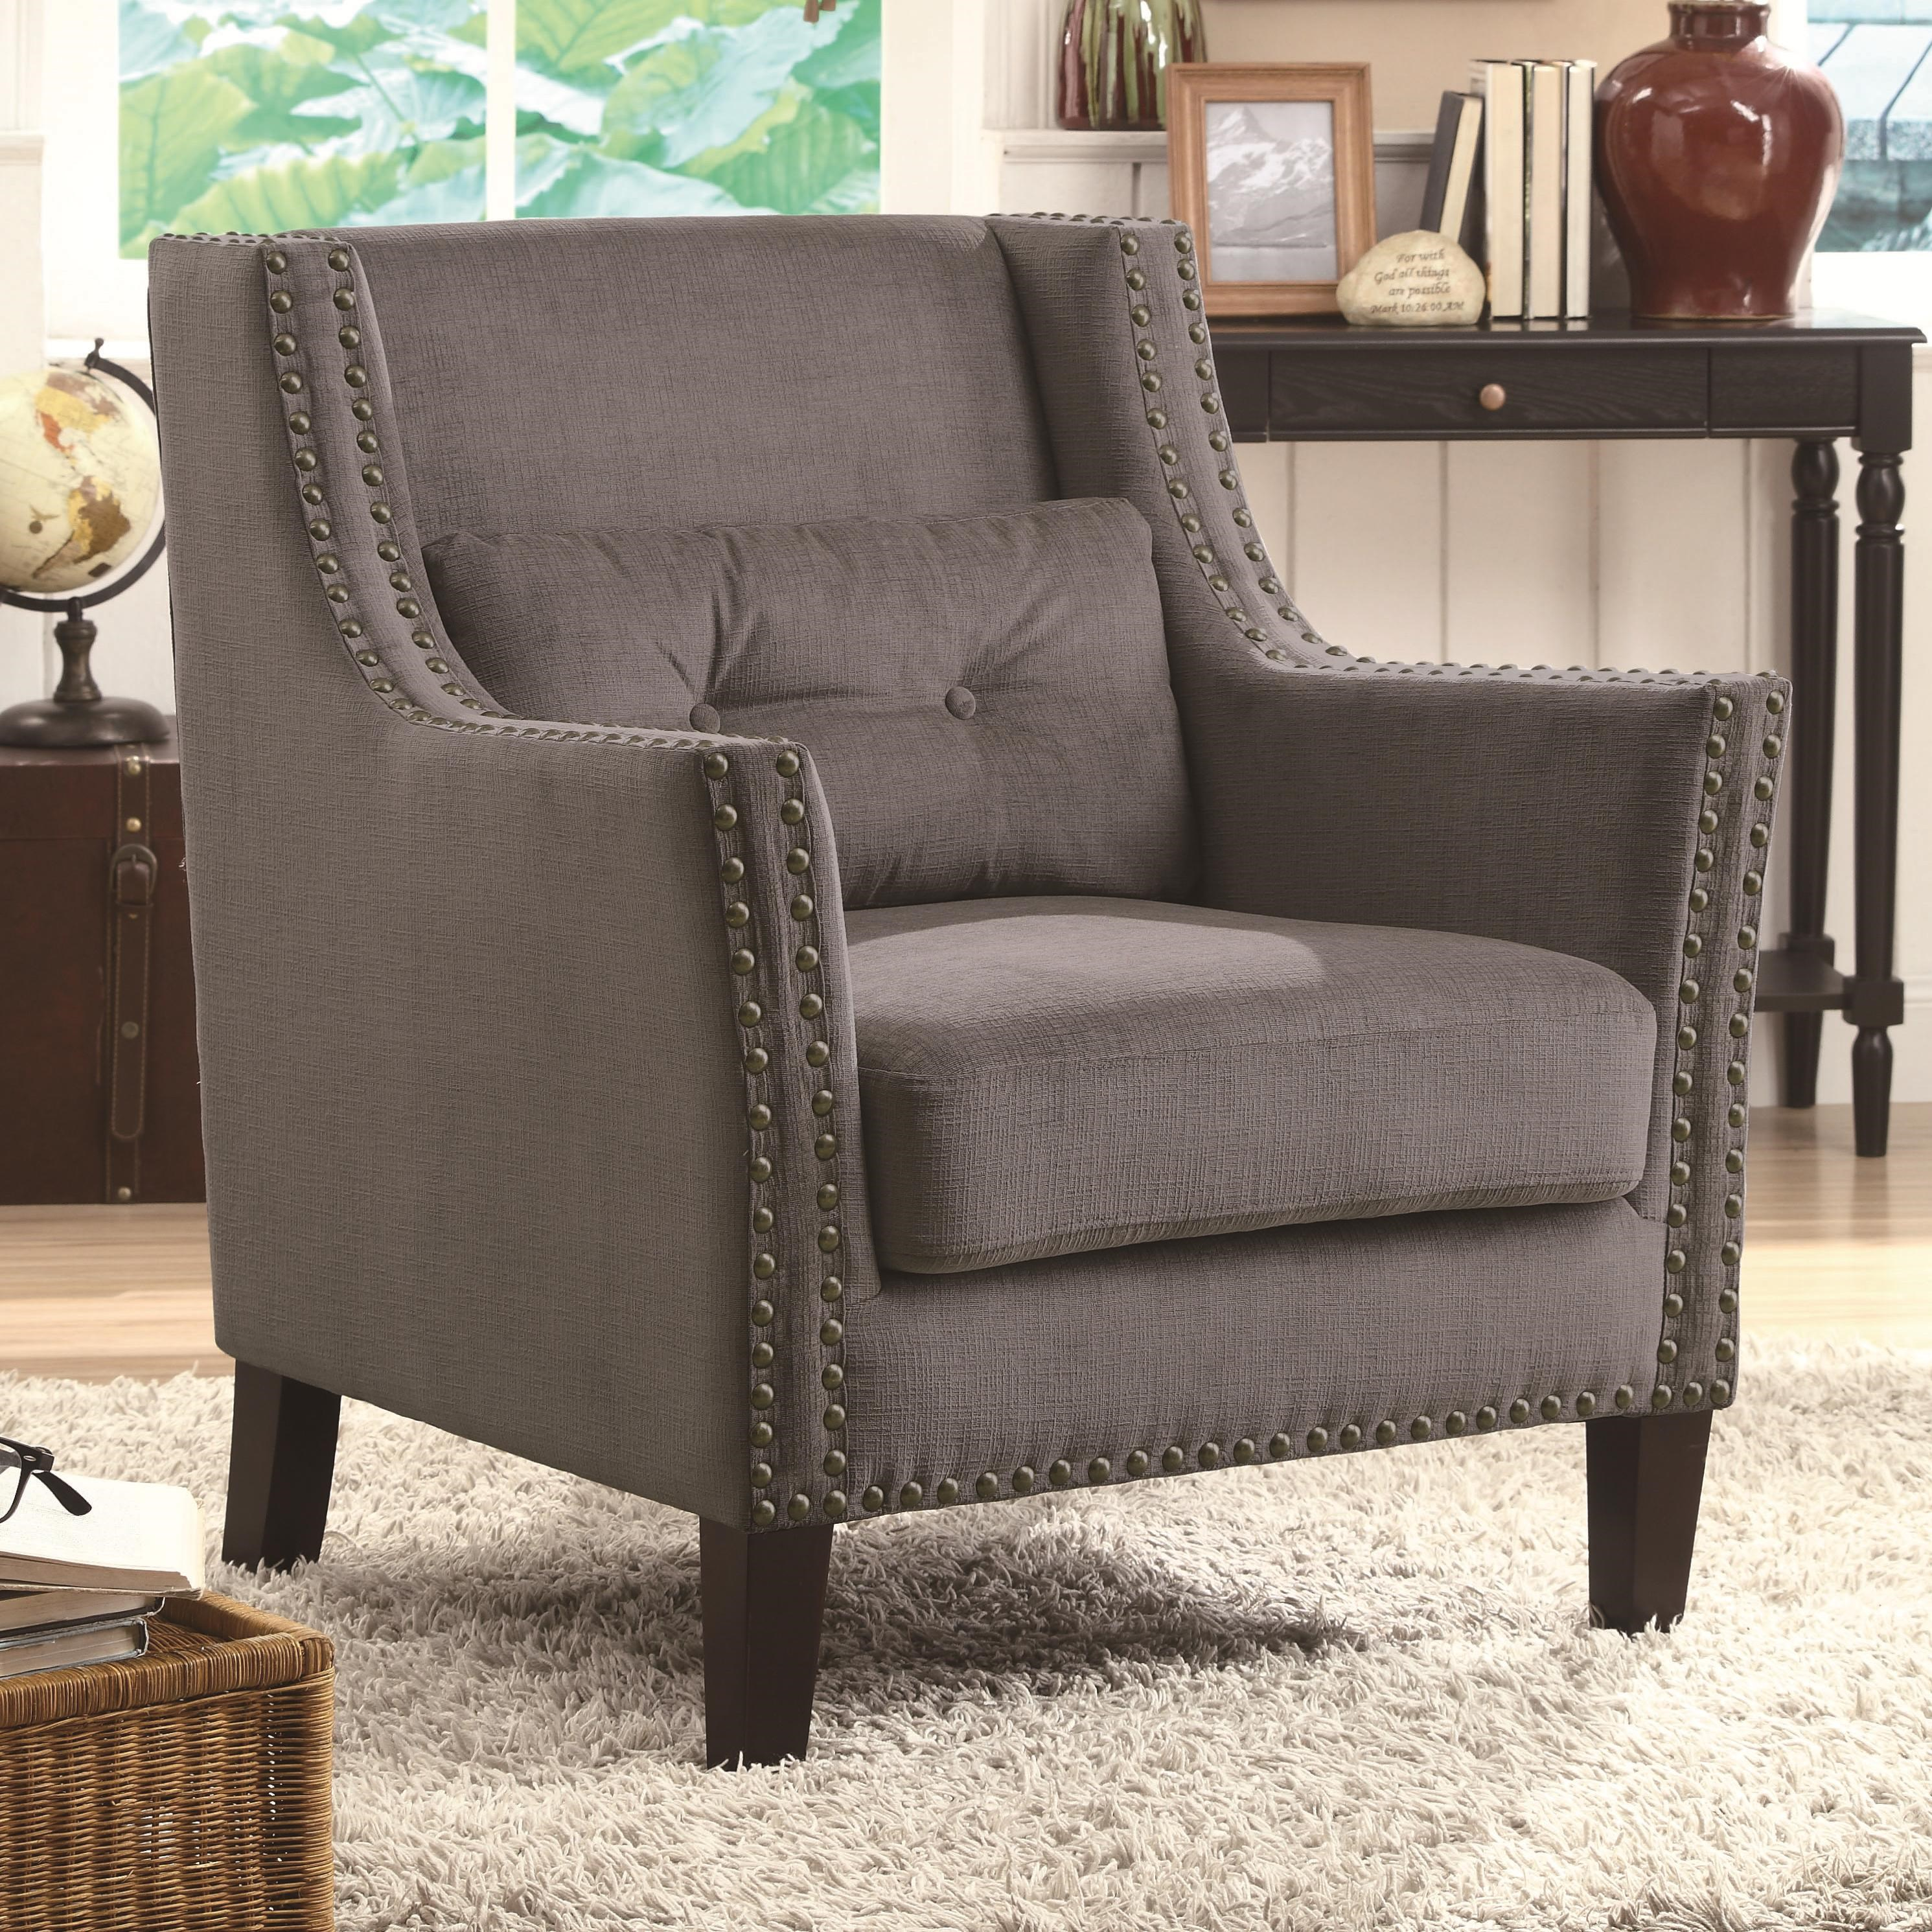 Incroyable Coaster Accent Seating Accent Chair With Nailhead Trim And Accent Pillow